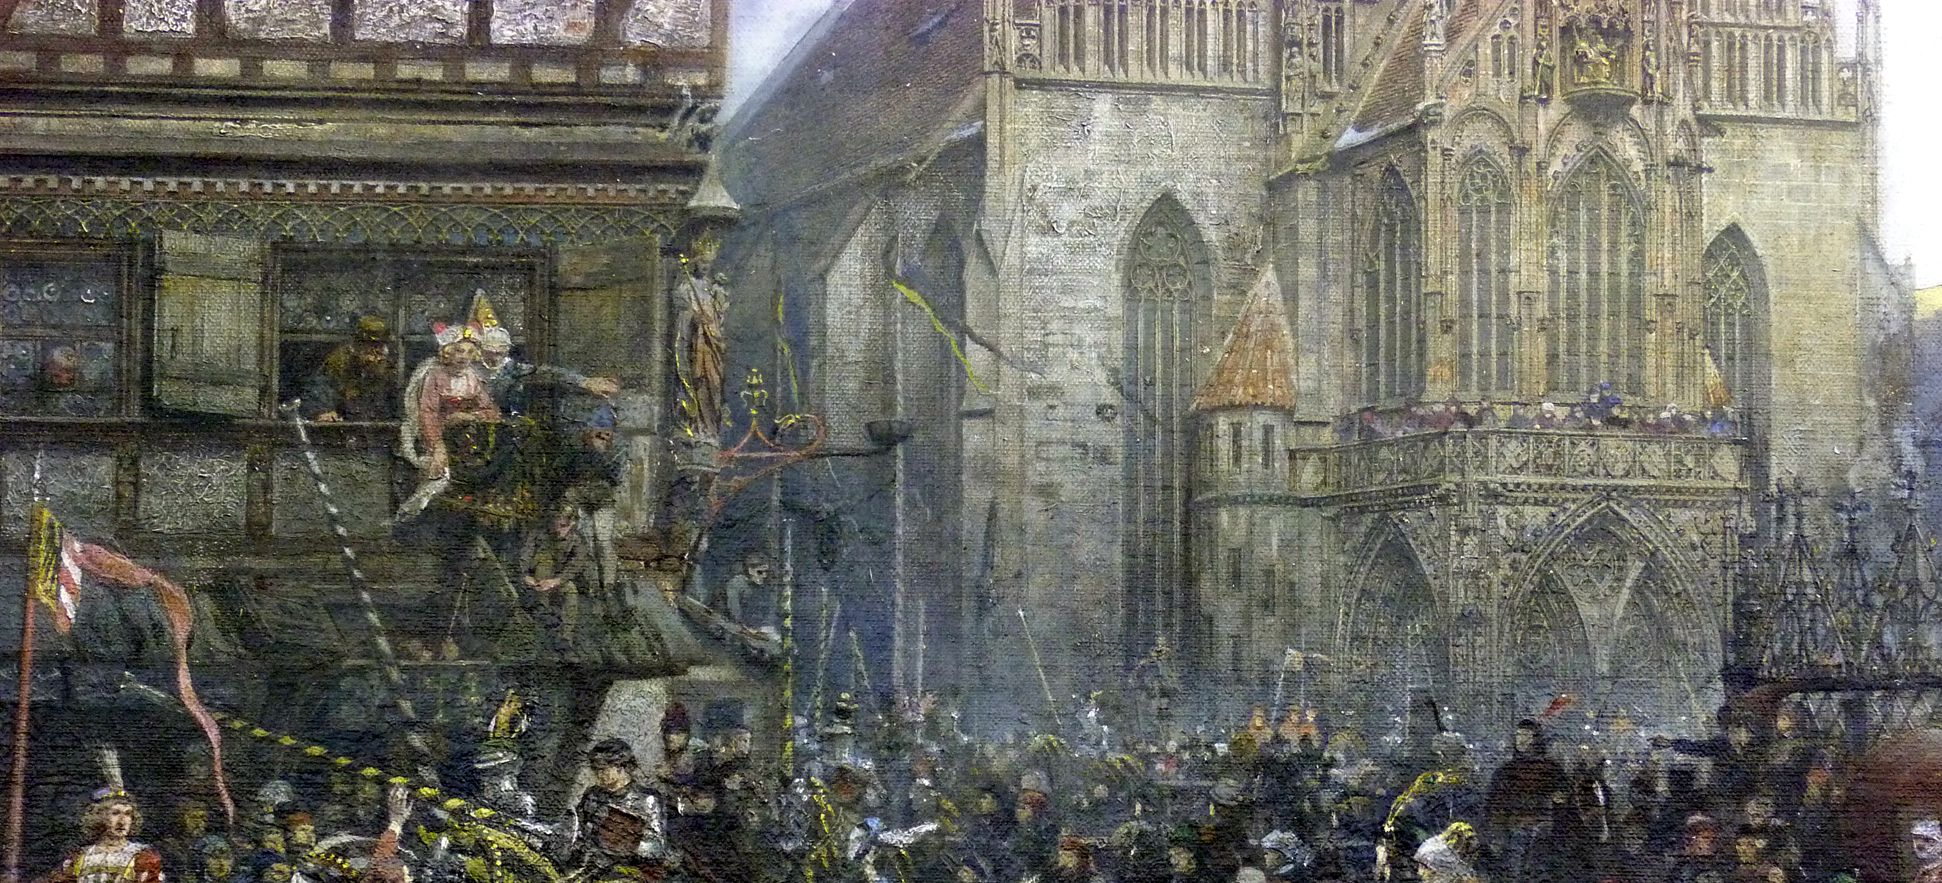 The Market Place in Nuremberg at the time of the tournament of 1496 Procession of the tournament knights, onlookers